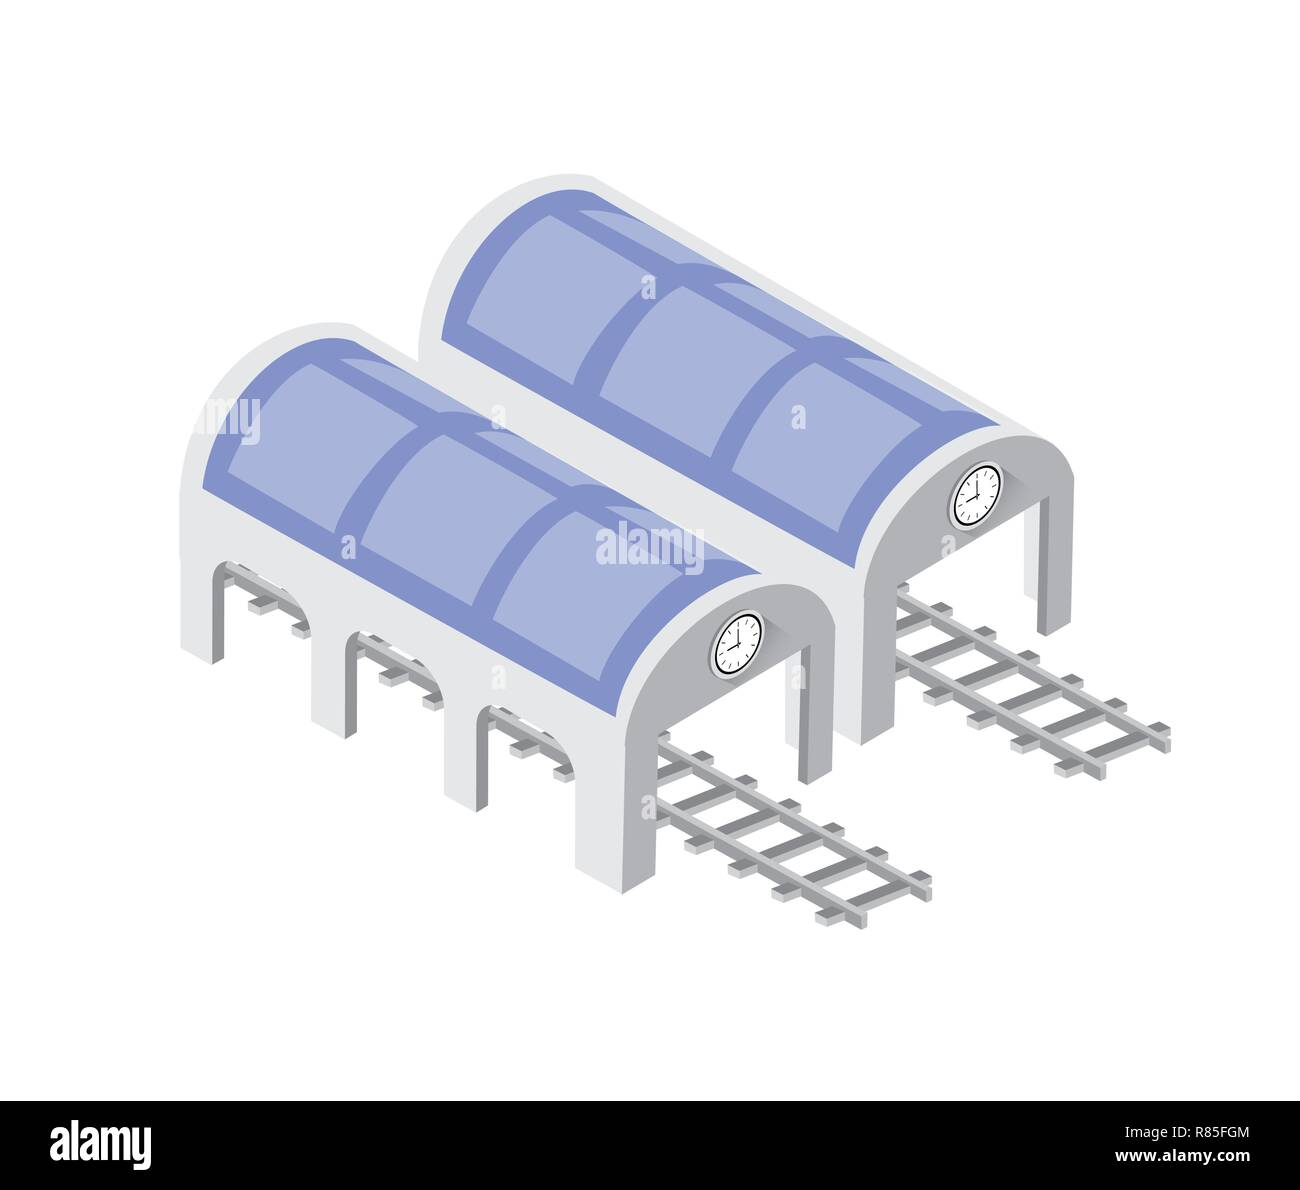 Fast modern high speed train. Vector flat 3d isometric illustration of public transport. Freight transportation to carry large numbers of passengers.  - Stock Vector